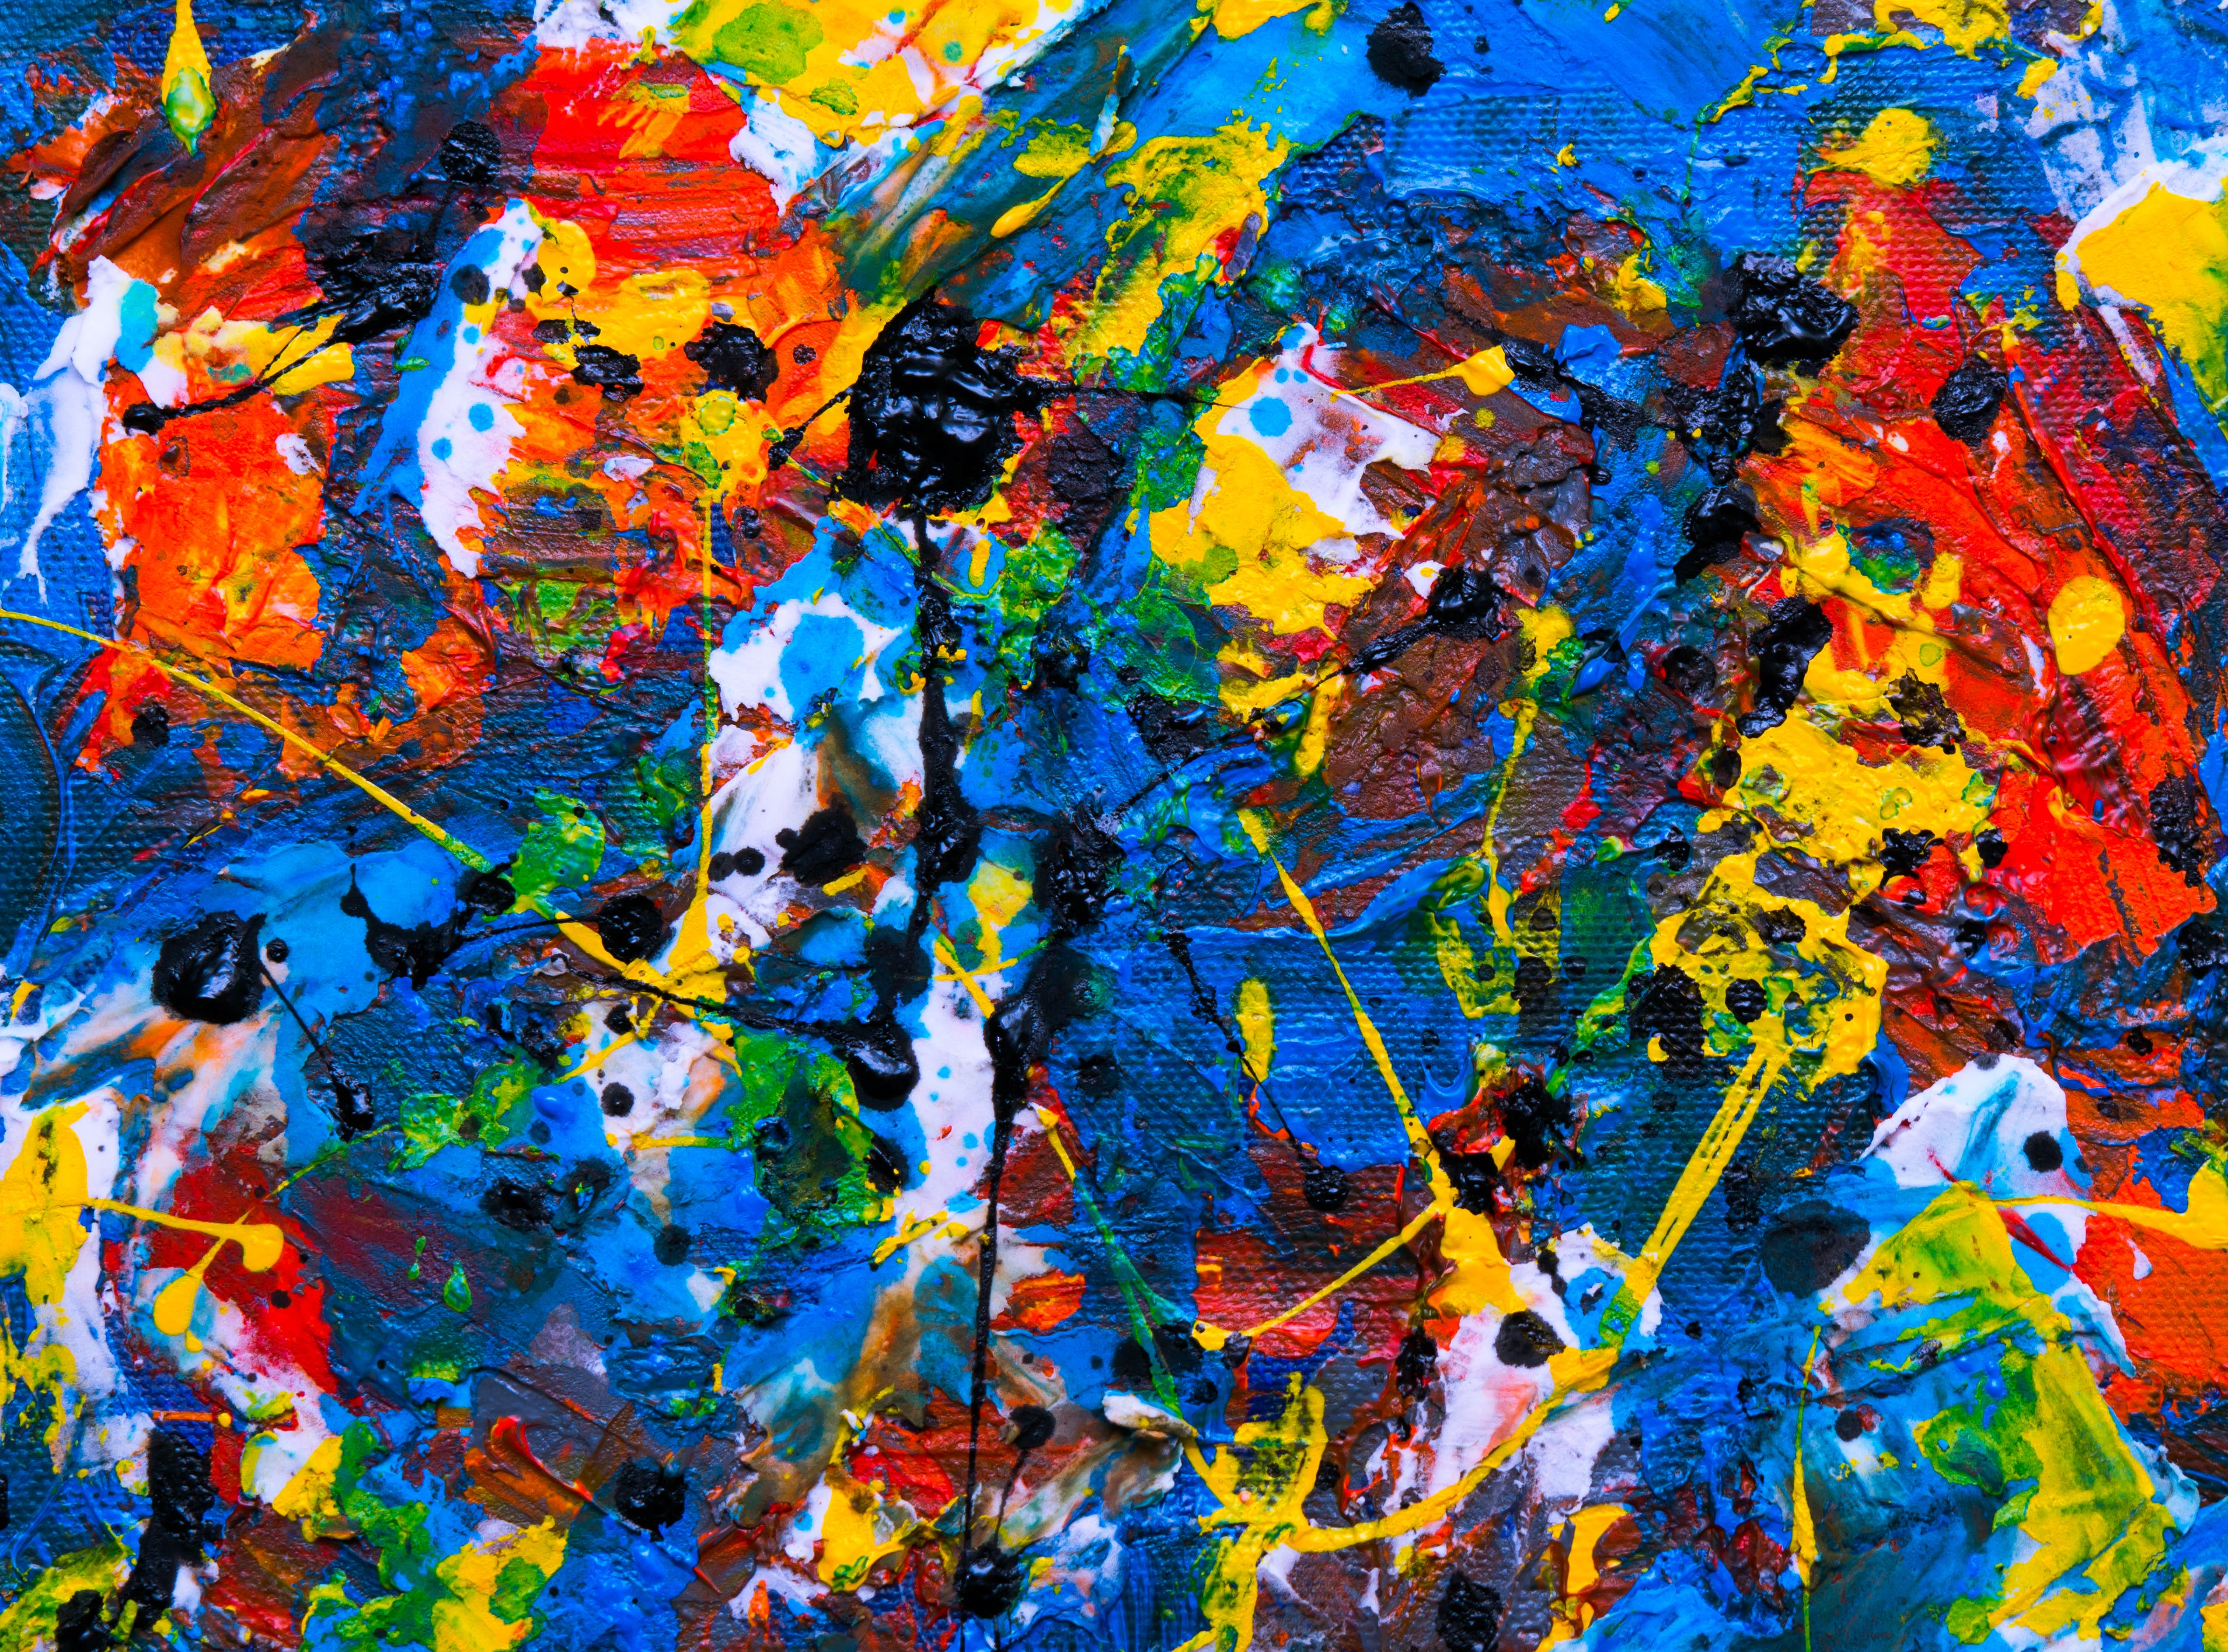 of abstract painting, acrylic paint, background, contemporary art